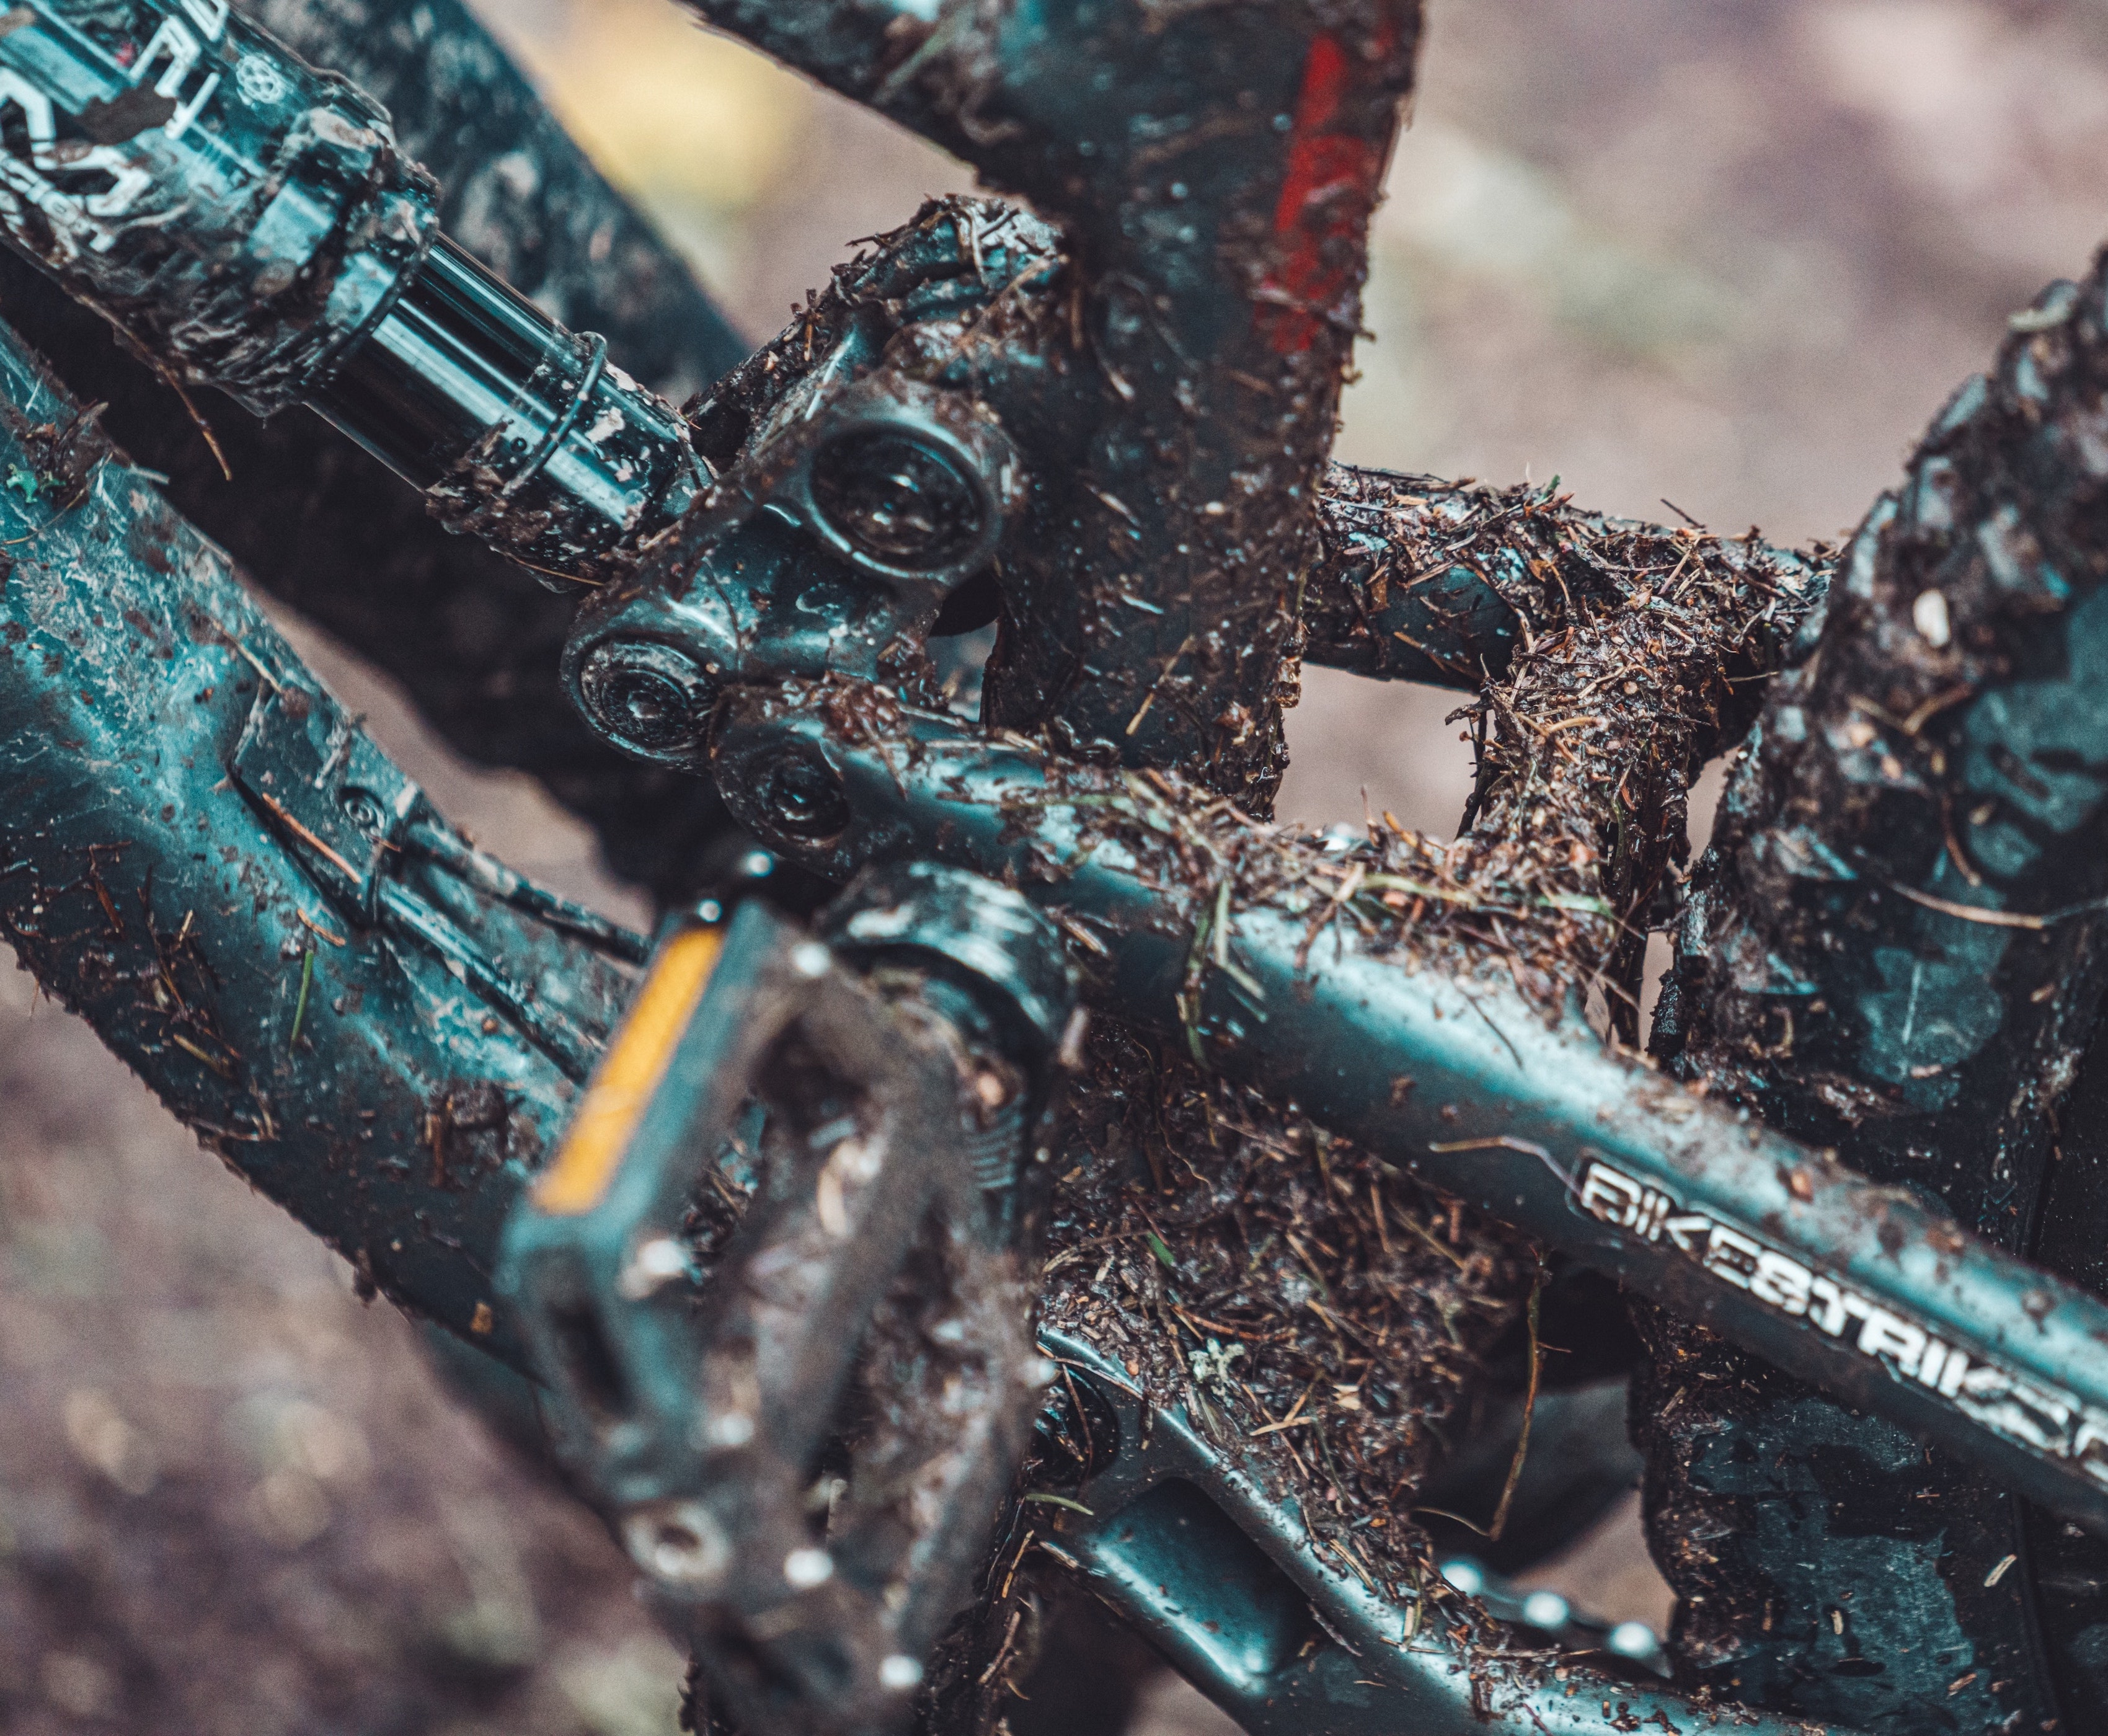 The picture shows a close-up of a dirty full suspension bike frame.